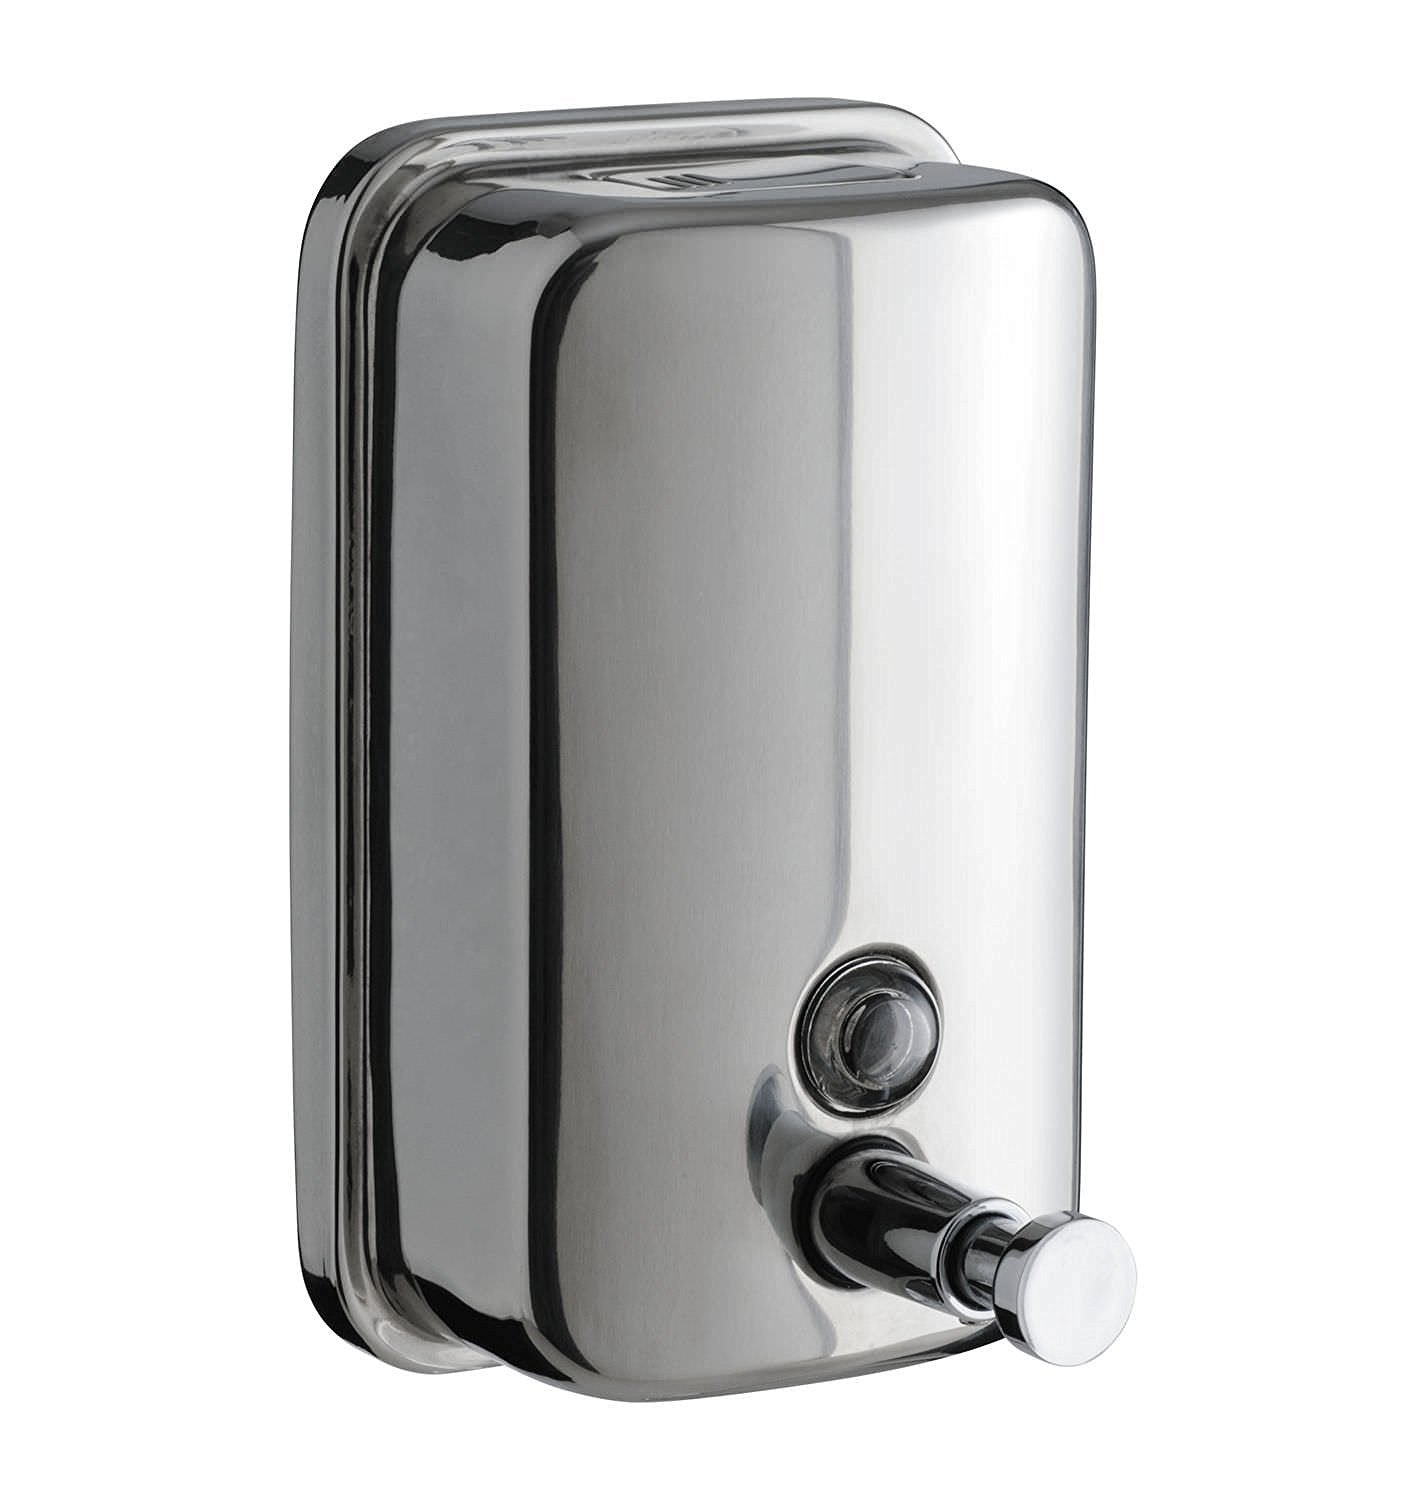 Stainless steel soap dispenser wall mounted